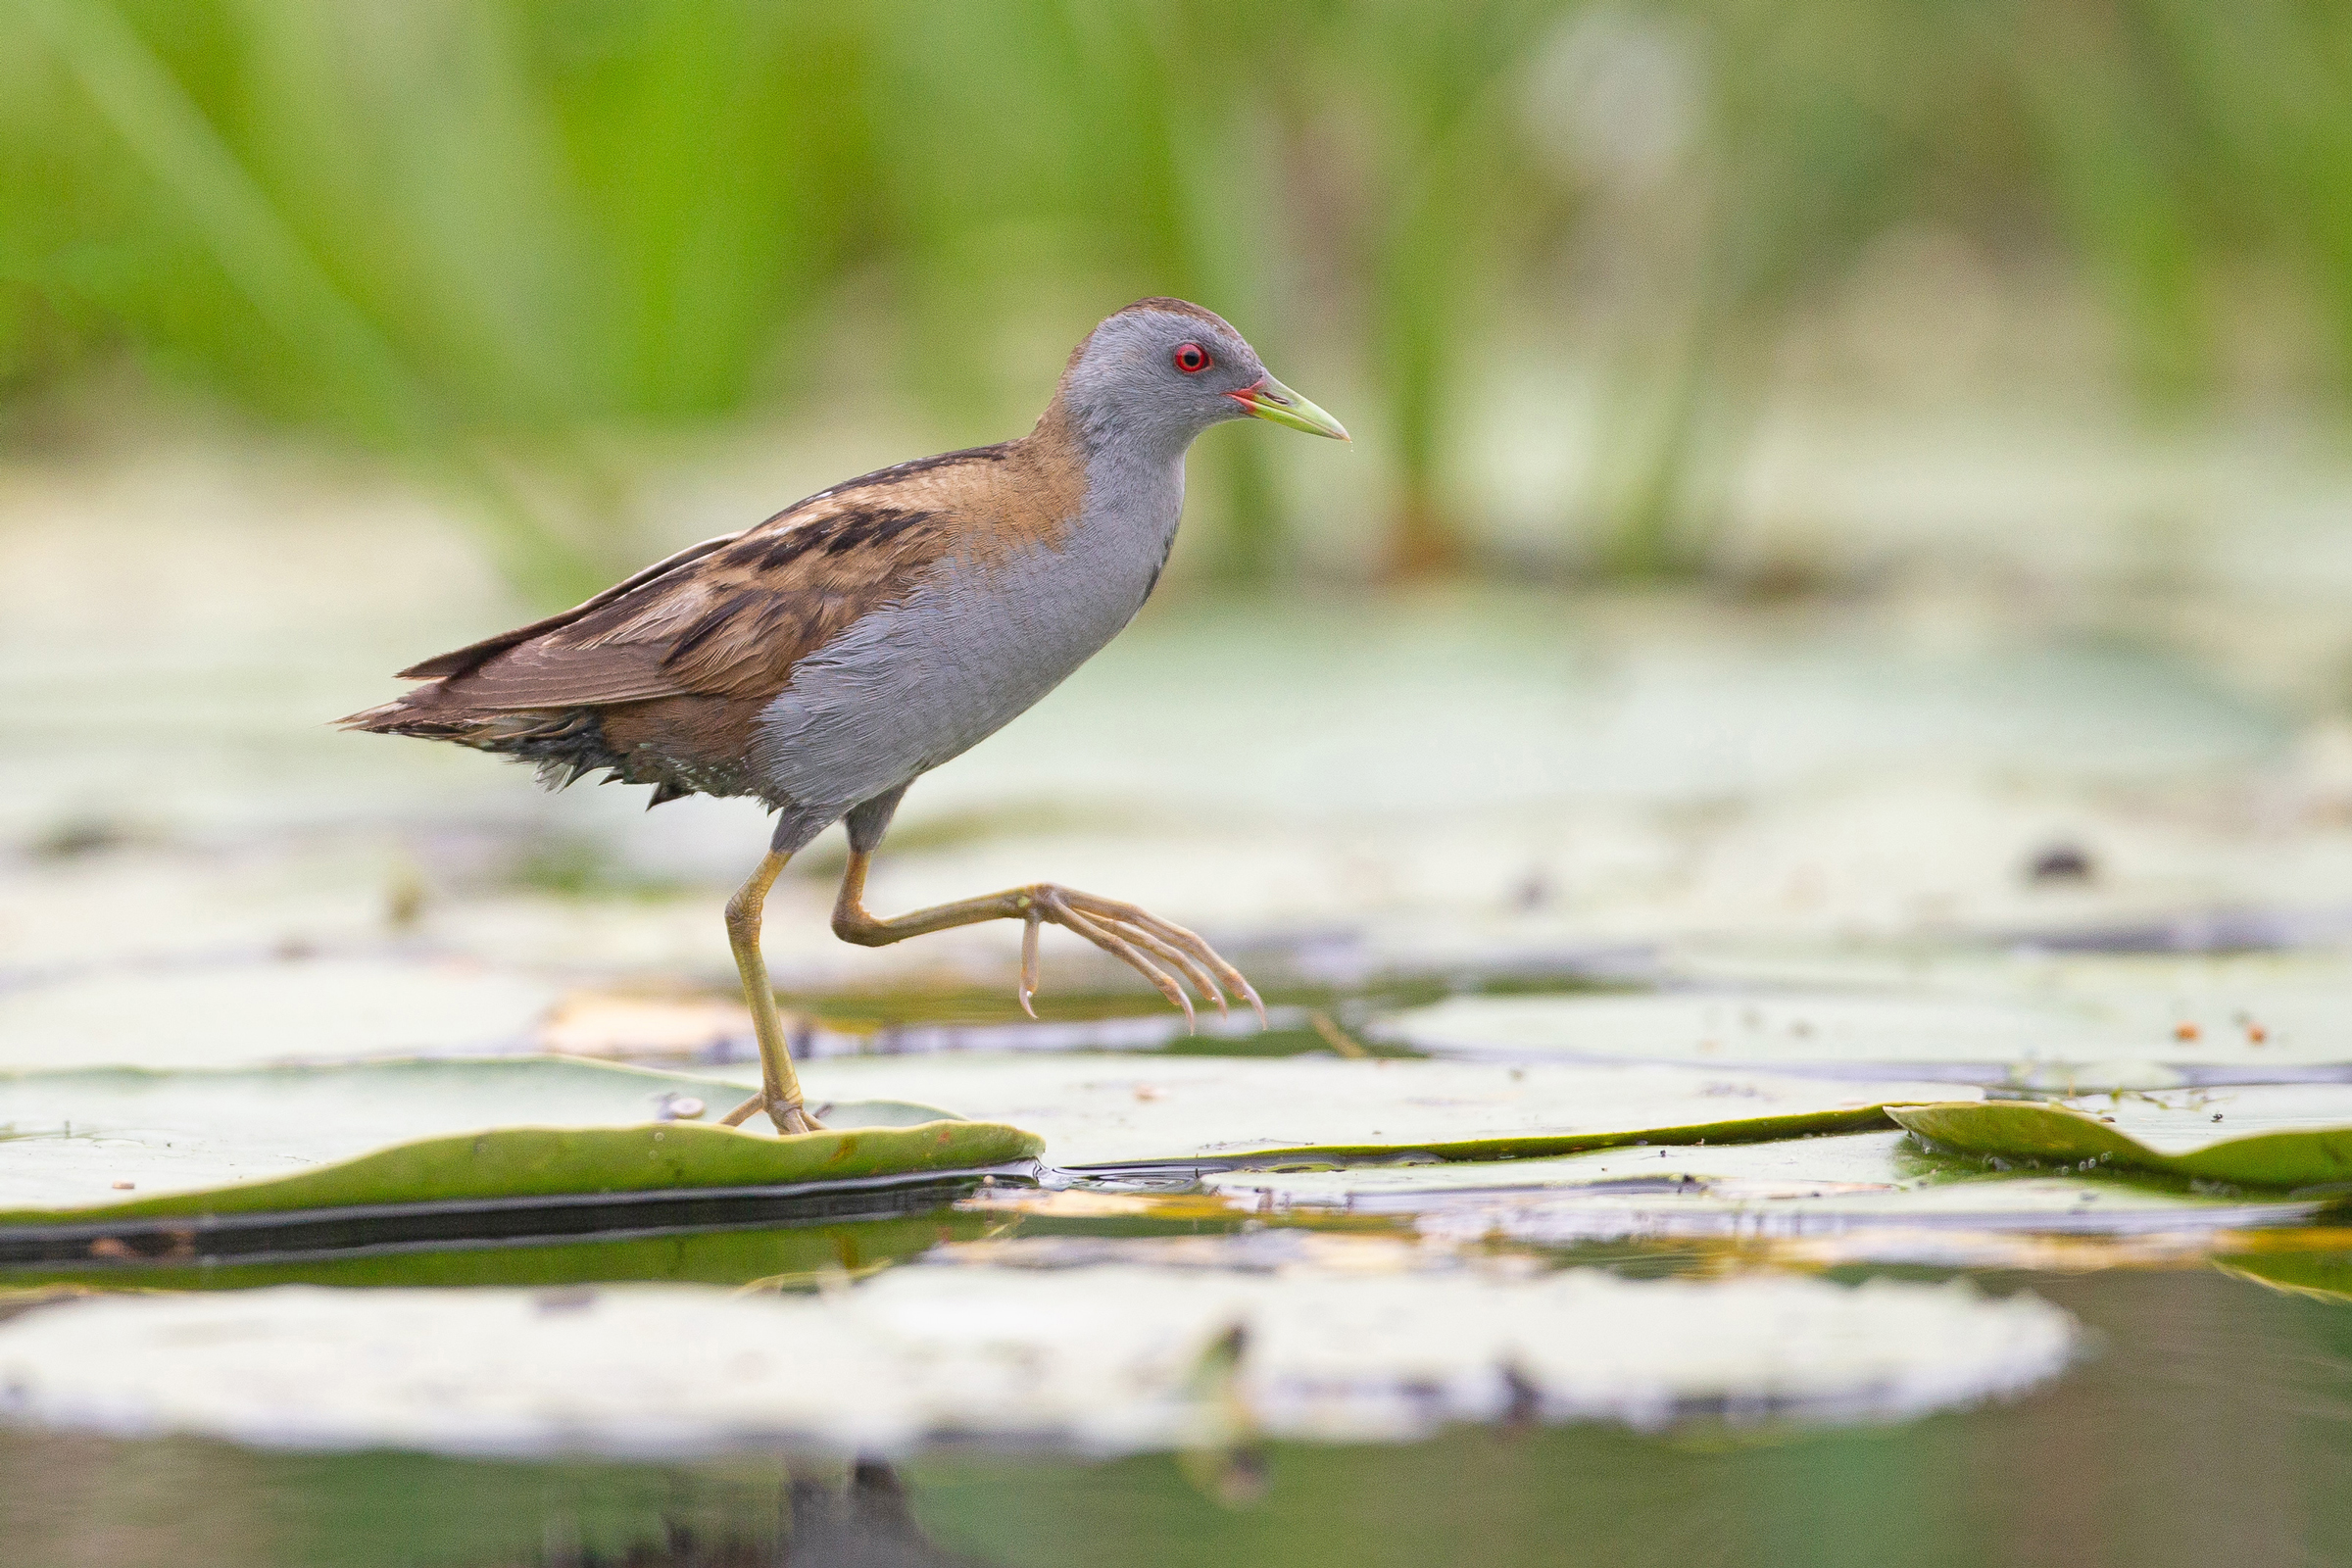 Little Crake skipping across lily pads